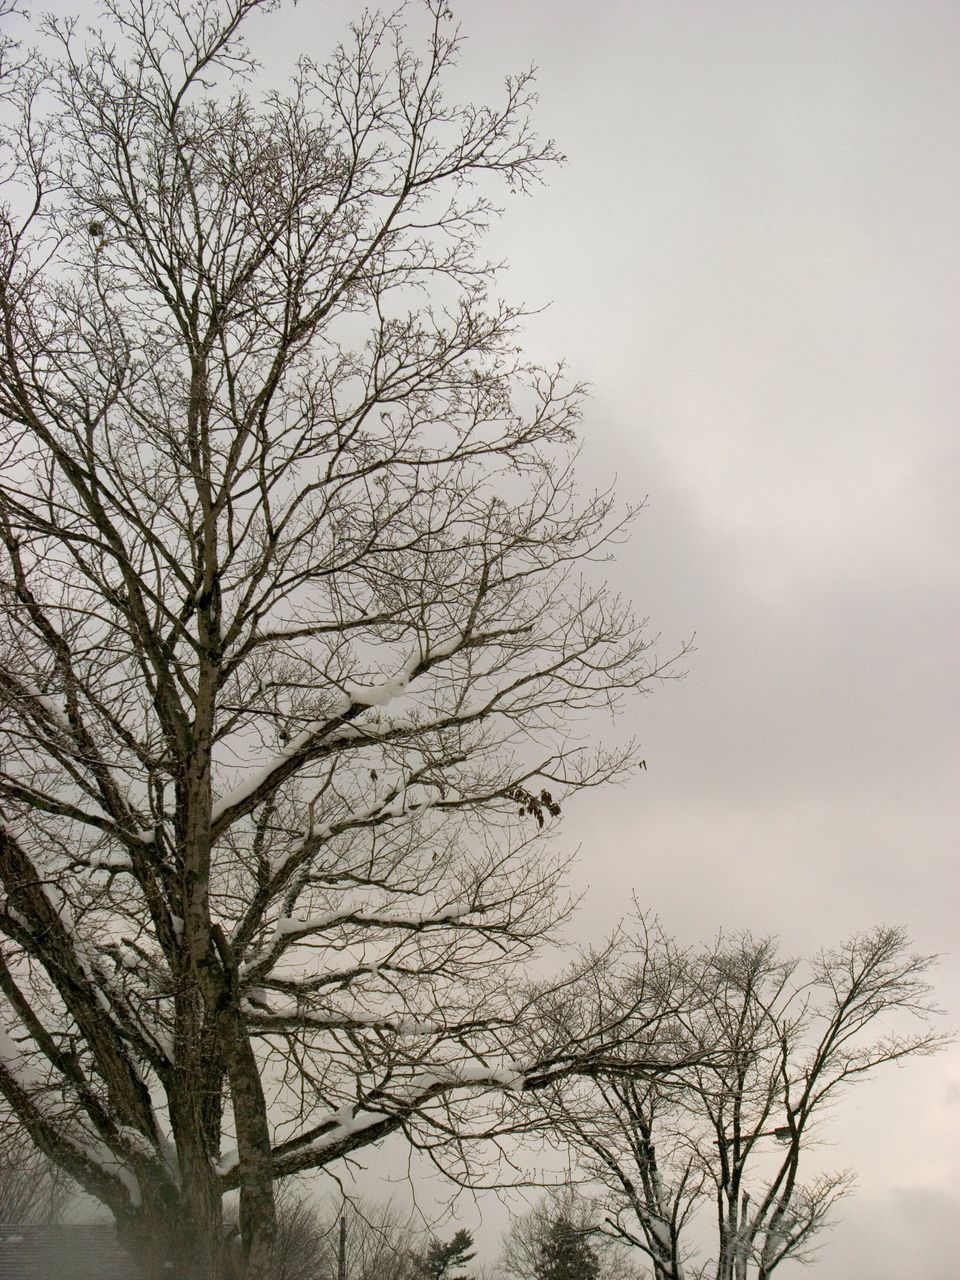 bare tree, tree, low angle view, nature, sky, branch, outdoors, no people, beauty in nature, tranquility, day, scenics, clear sky